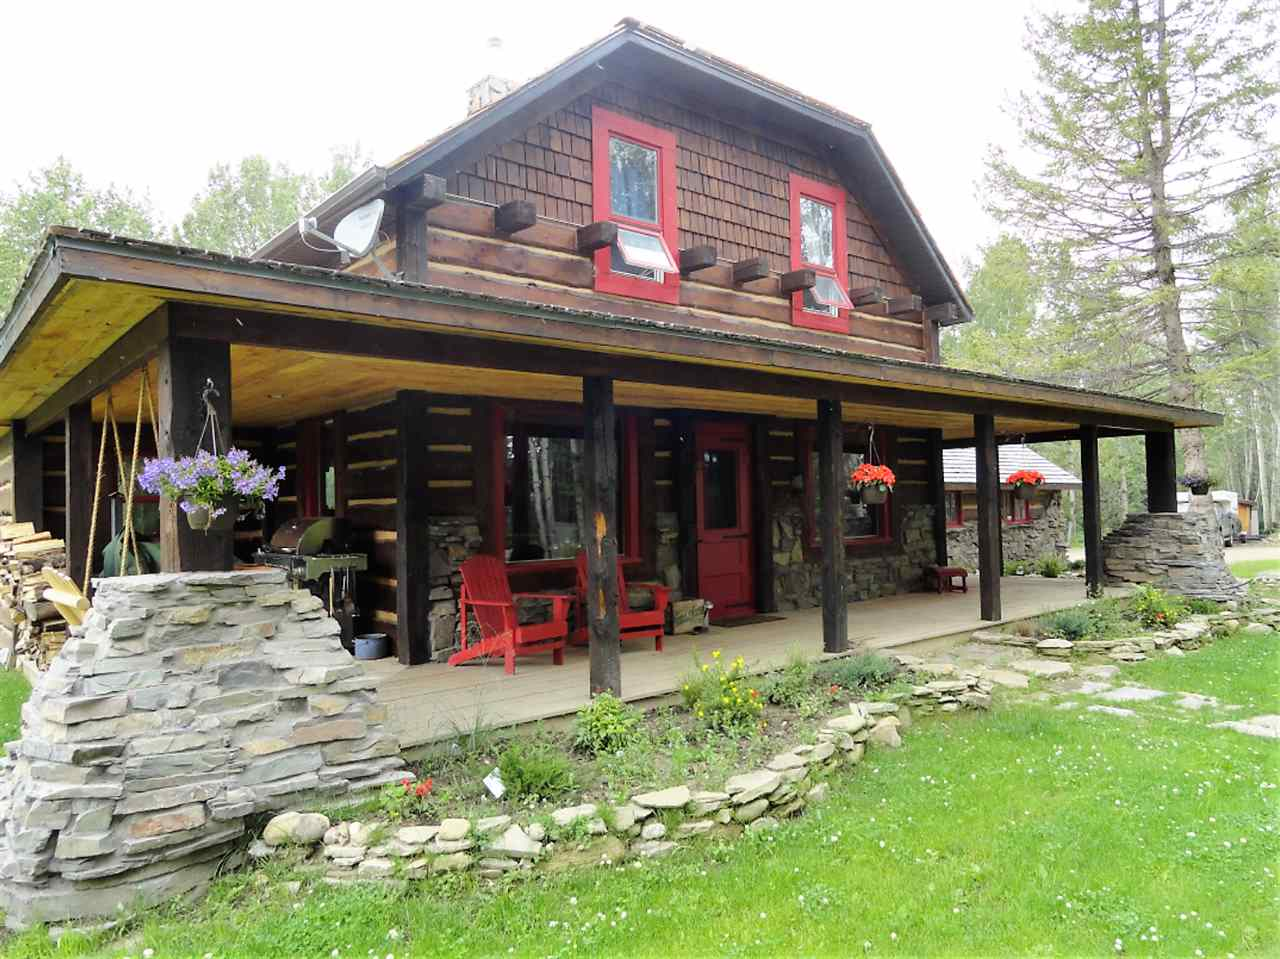 Rustic Charm! You won't find another property like this! 3 bedroom, office and 1 bathroom. Fully landscaped half acre, garden & firepit. Completely rebuilt with beautiful oak cupboards, concrete counter tops, slate bathroom details, refinished hardwood floors and stunning stone fireplace. This one of a kind property backs onto protected land and is only a short walk to lake access with shared dock.